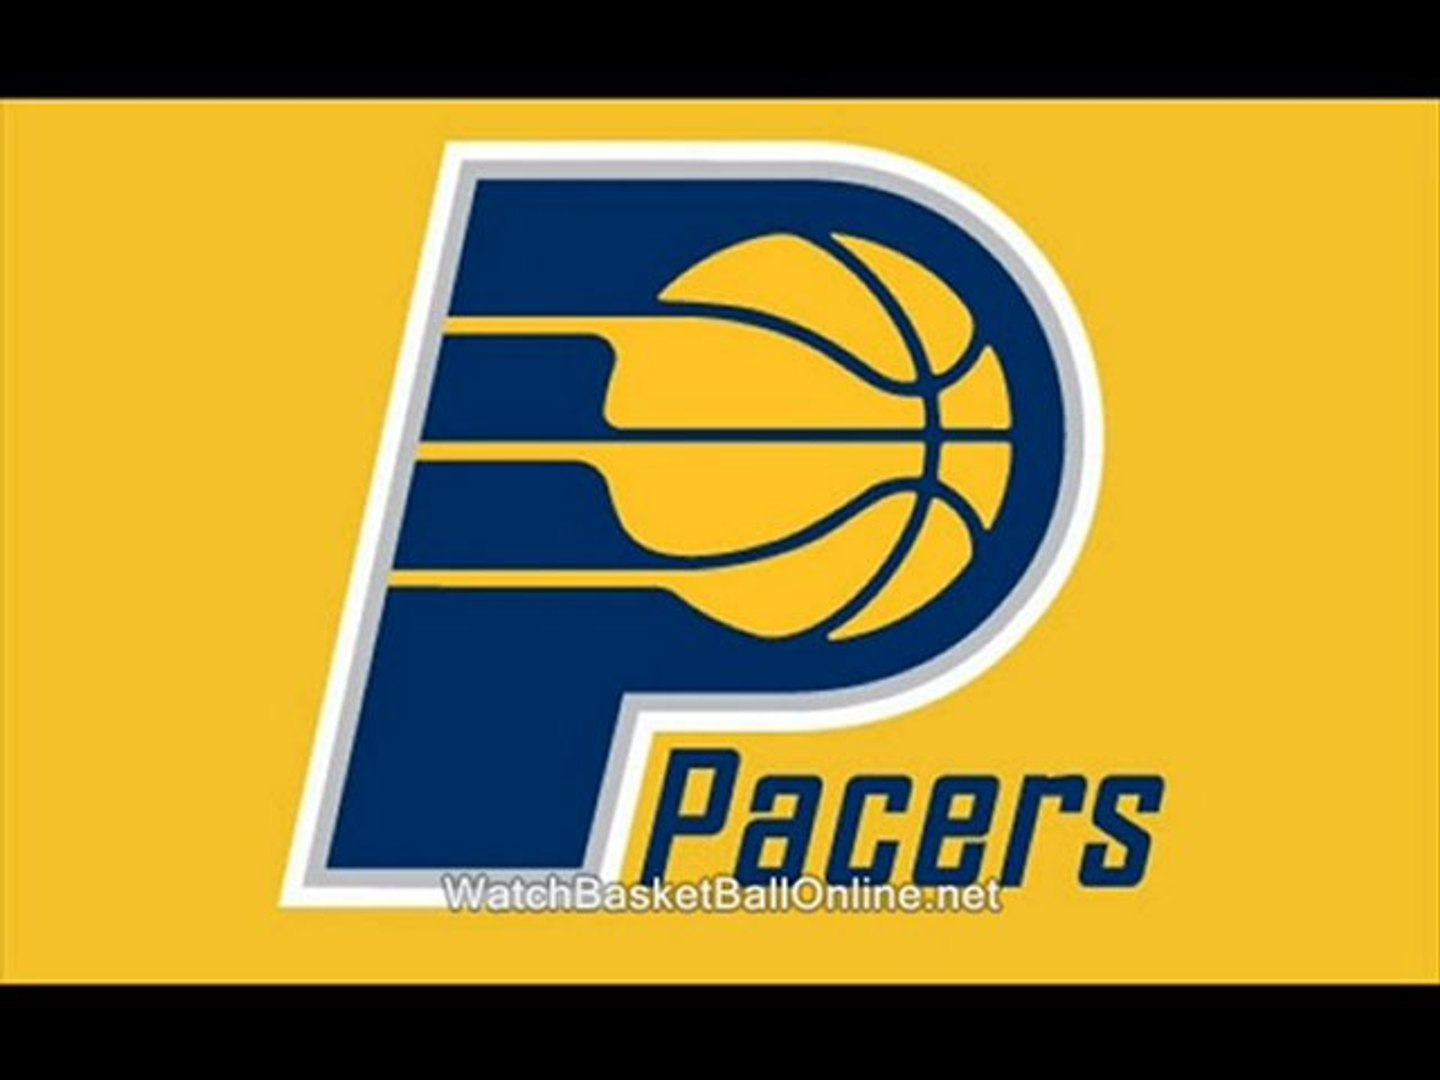 watch 76ers vs Pacers  Basketball Pacers   live streaming